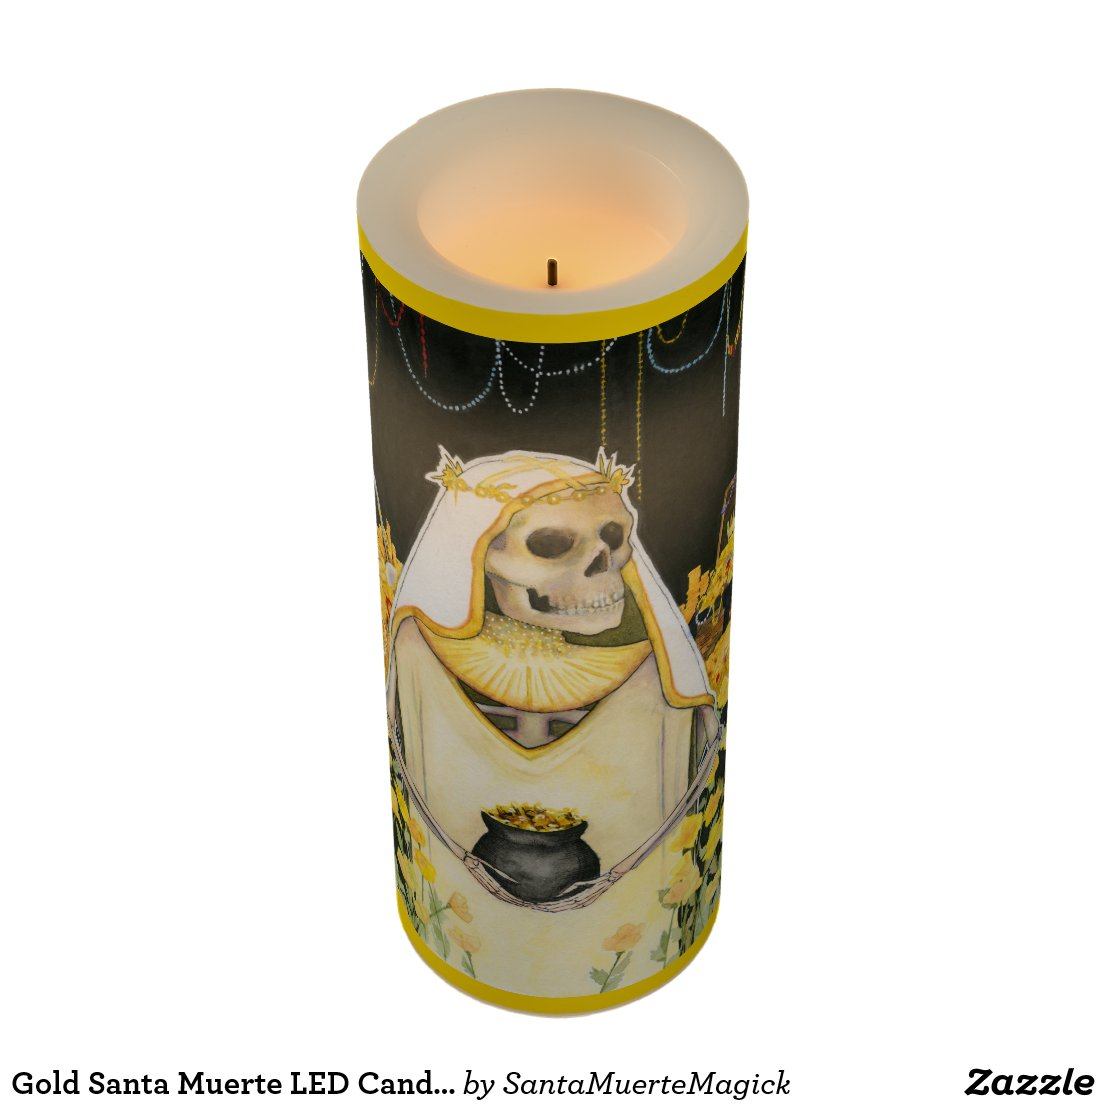 Gold Santa Muerte LED Candle